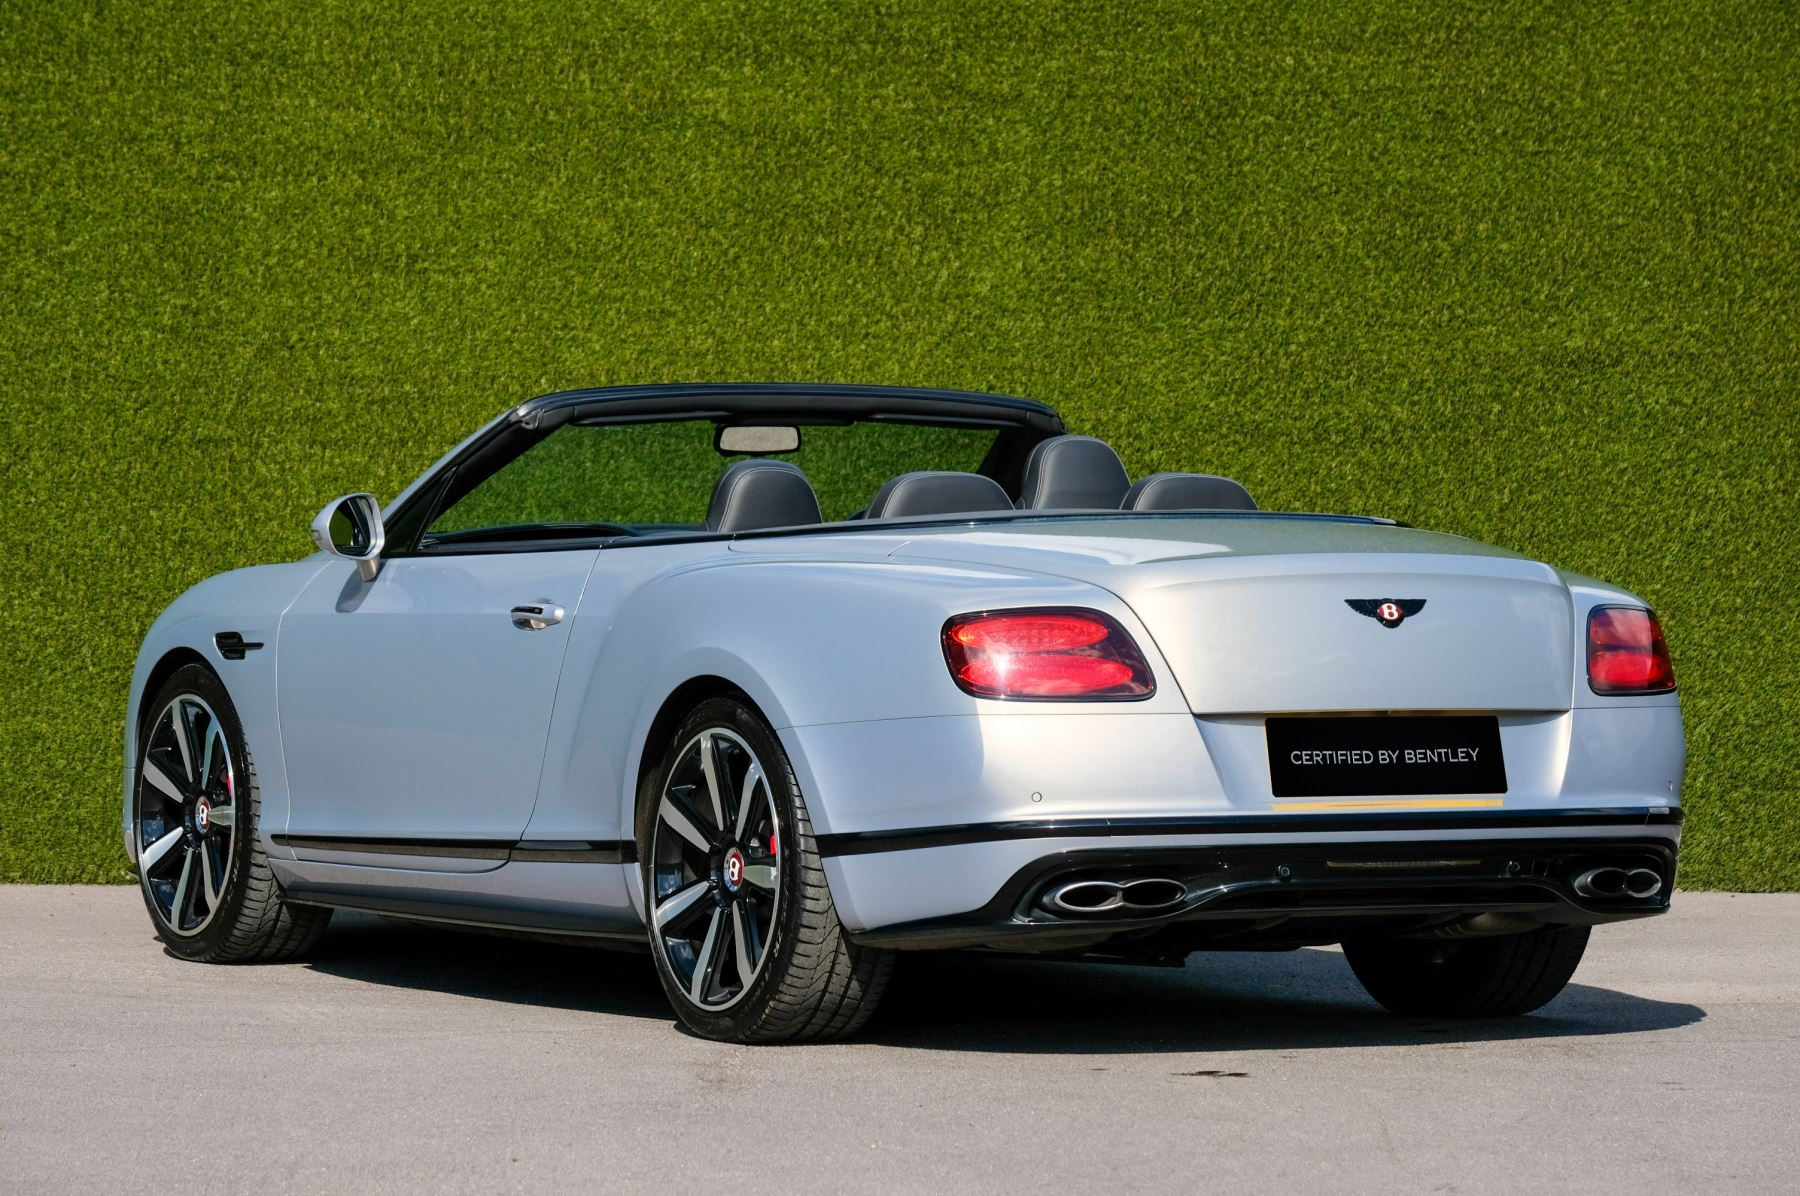 Bentley Continental GTC 4.0 V8 S Mulliner Driving Spec - Ventilated Front Seats with Massage Function image 5